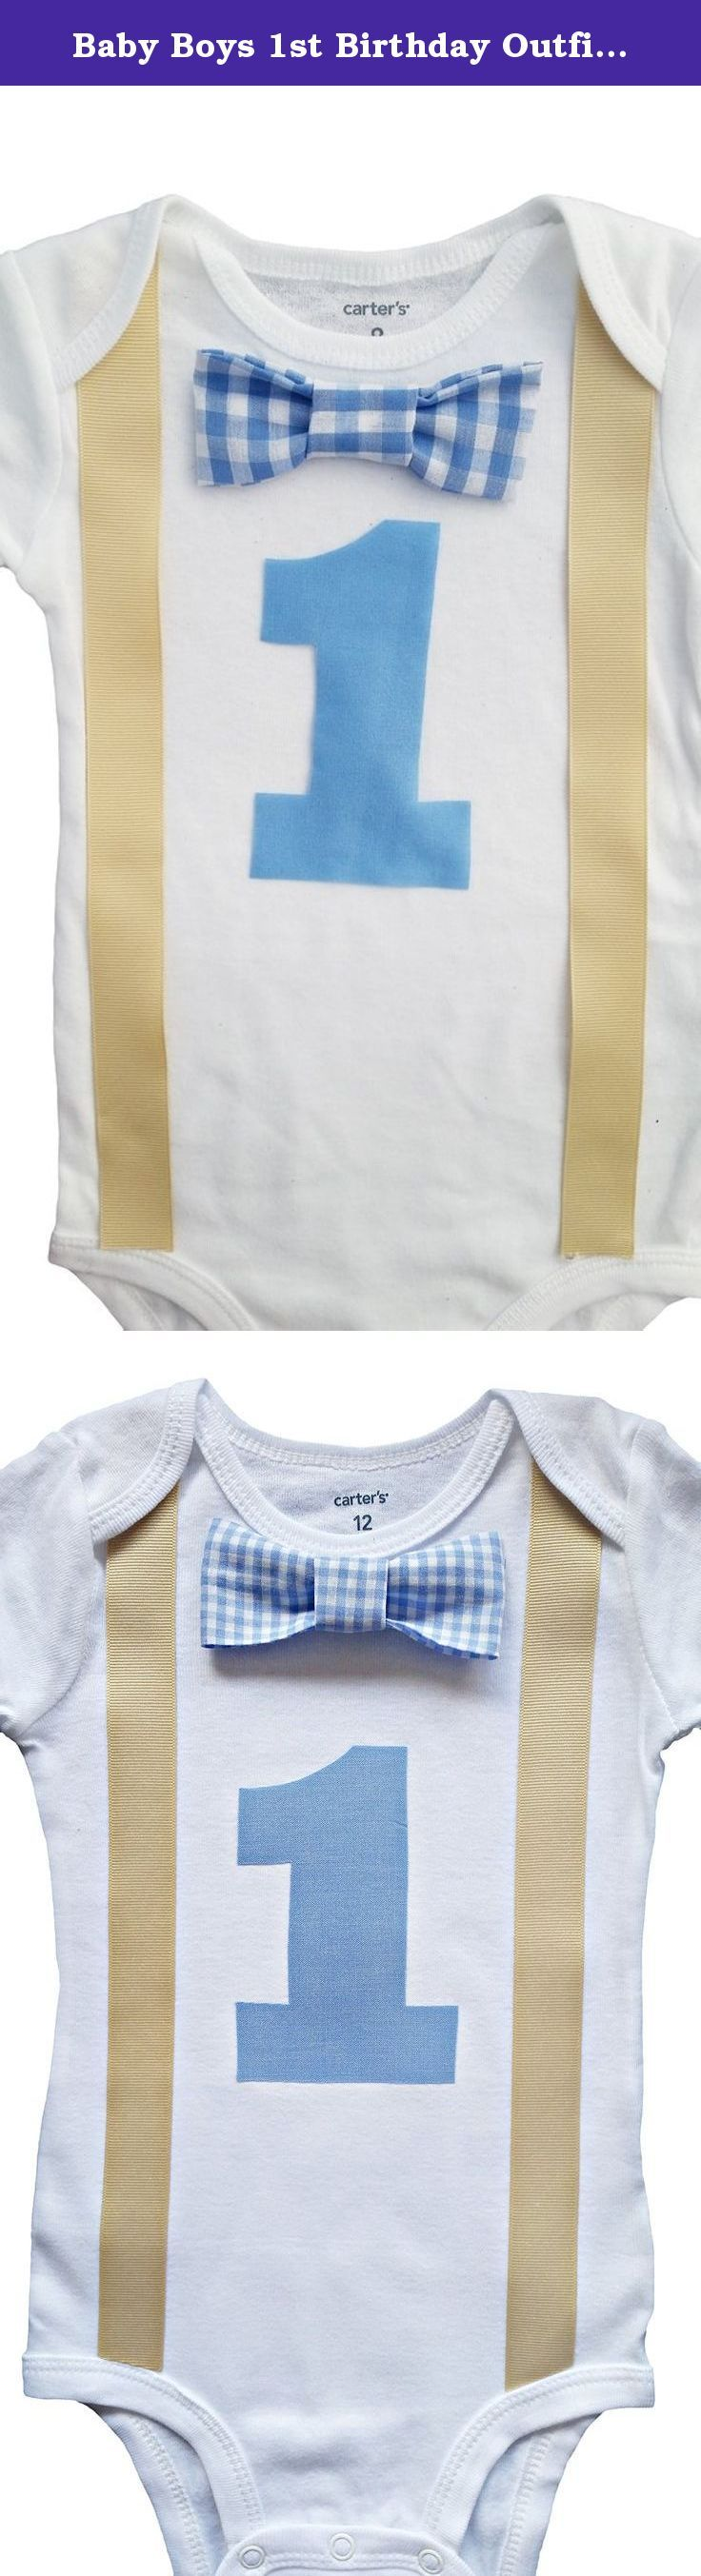 Baby Boys 1st Birthday Outfit - Blue Gingham/Khaki. Perfect Pairz Products are all handmade with care in our South Florida studio. We use Carters bodysuits - the gold standard for sizing and fit, heat apply and stop stitch our suspenders and Mickey applique. The bow tie is handsewn and then stitched to the onesie. This outfit is incredibly durable and go through multiple washes while maintaining its fit and color. We use designer fabrics for all our bowties, which is why our birthday…